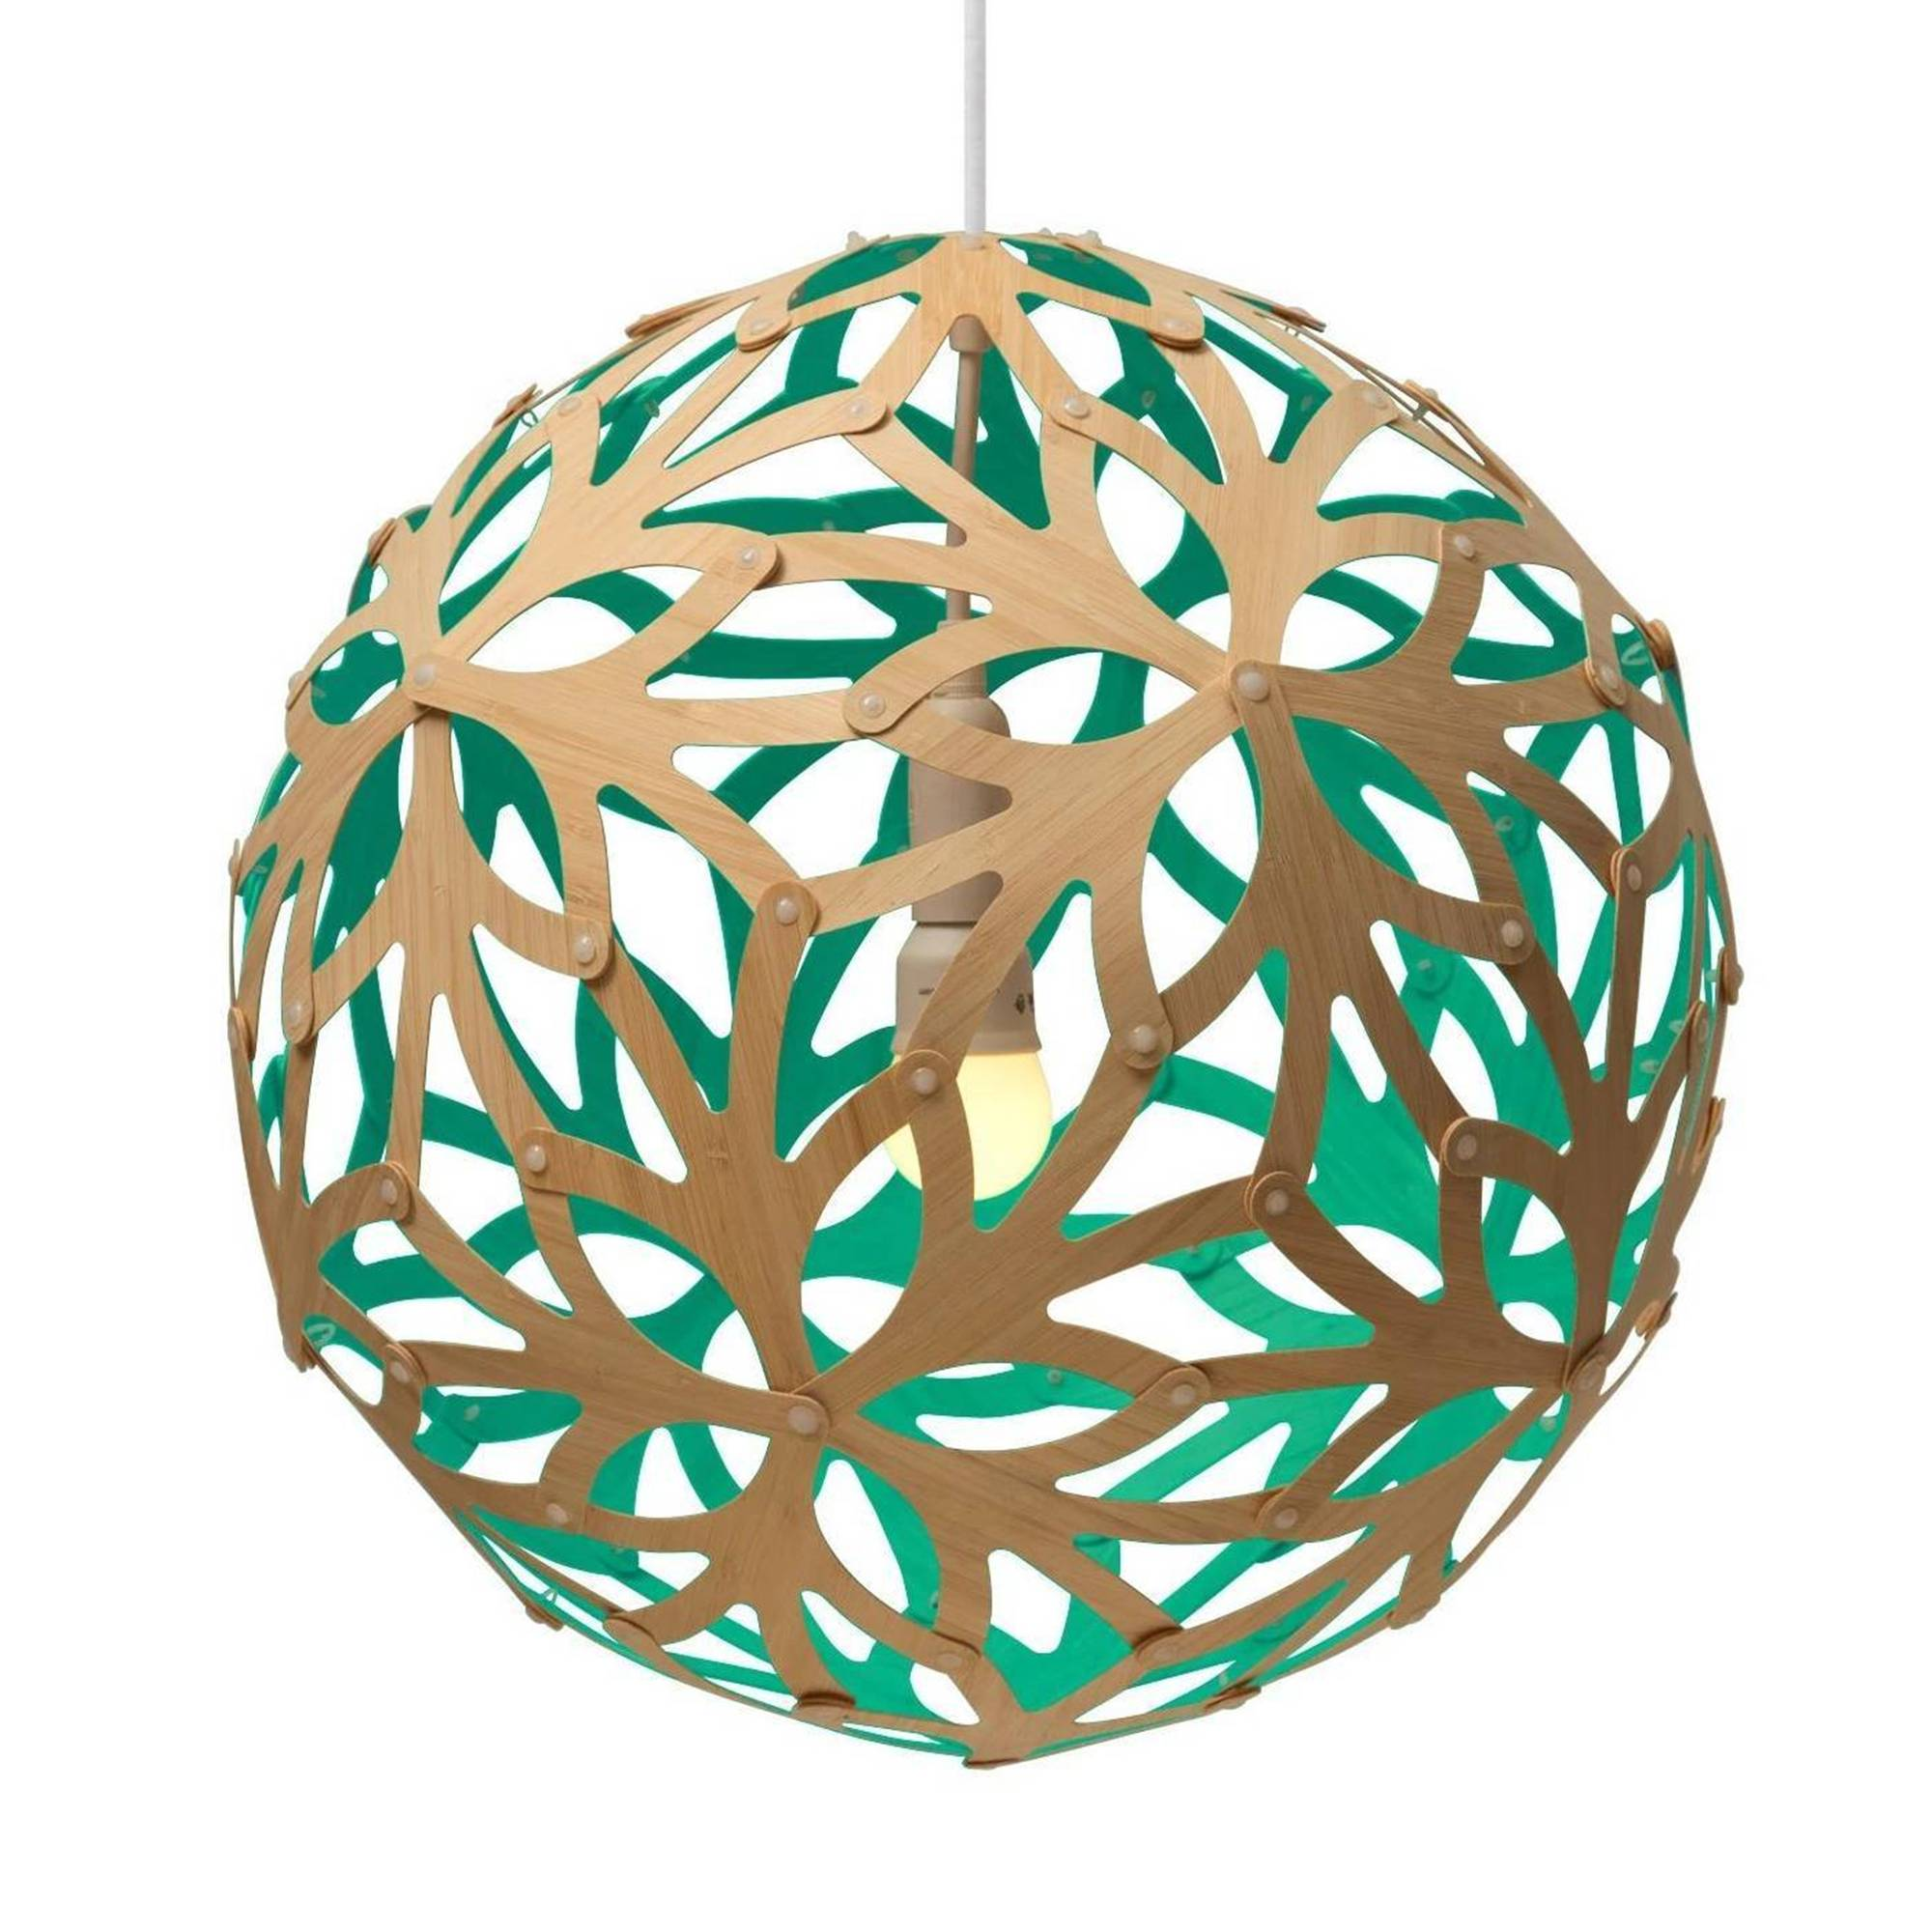 Floral Pendant Light: 1200 + Aqua